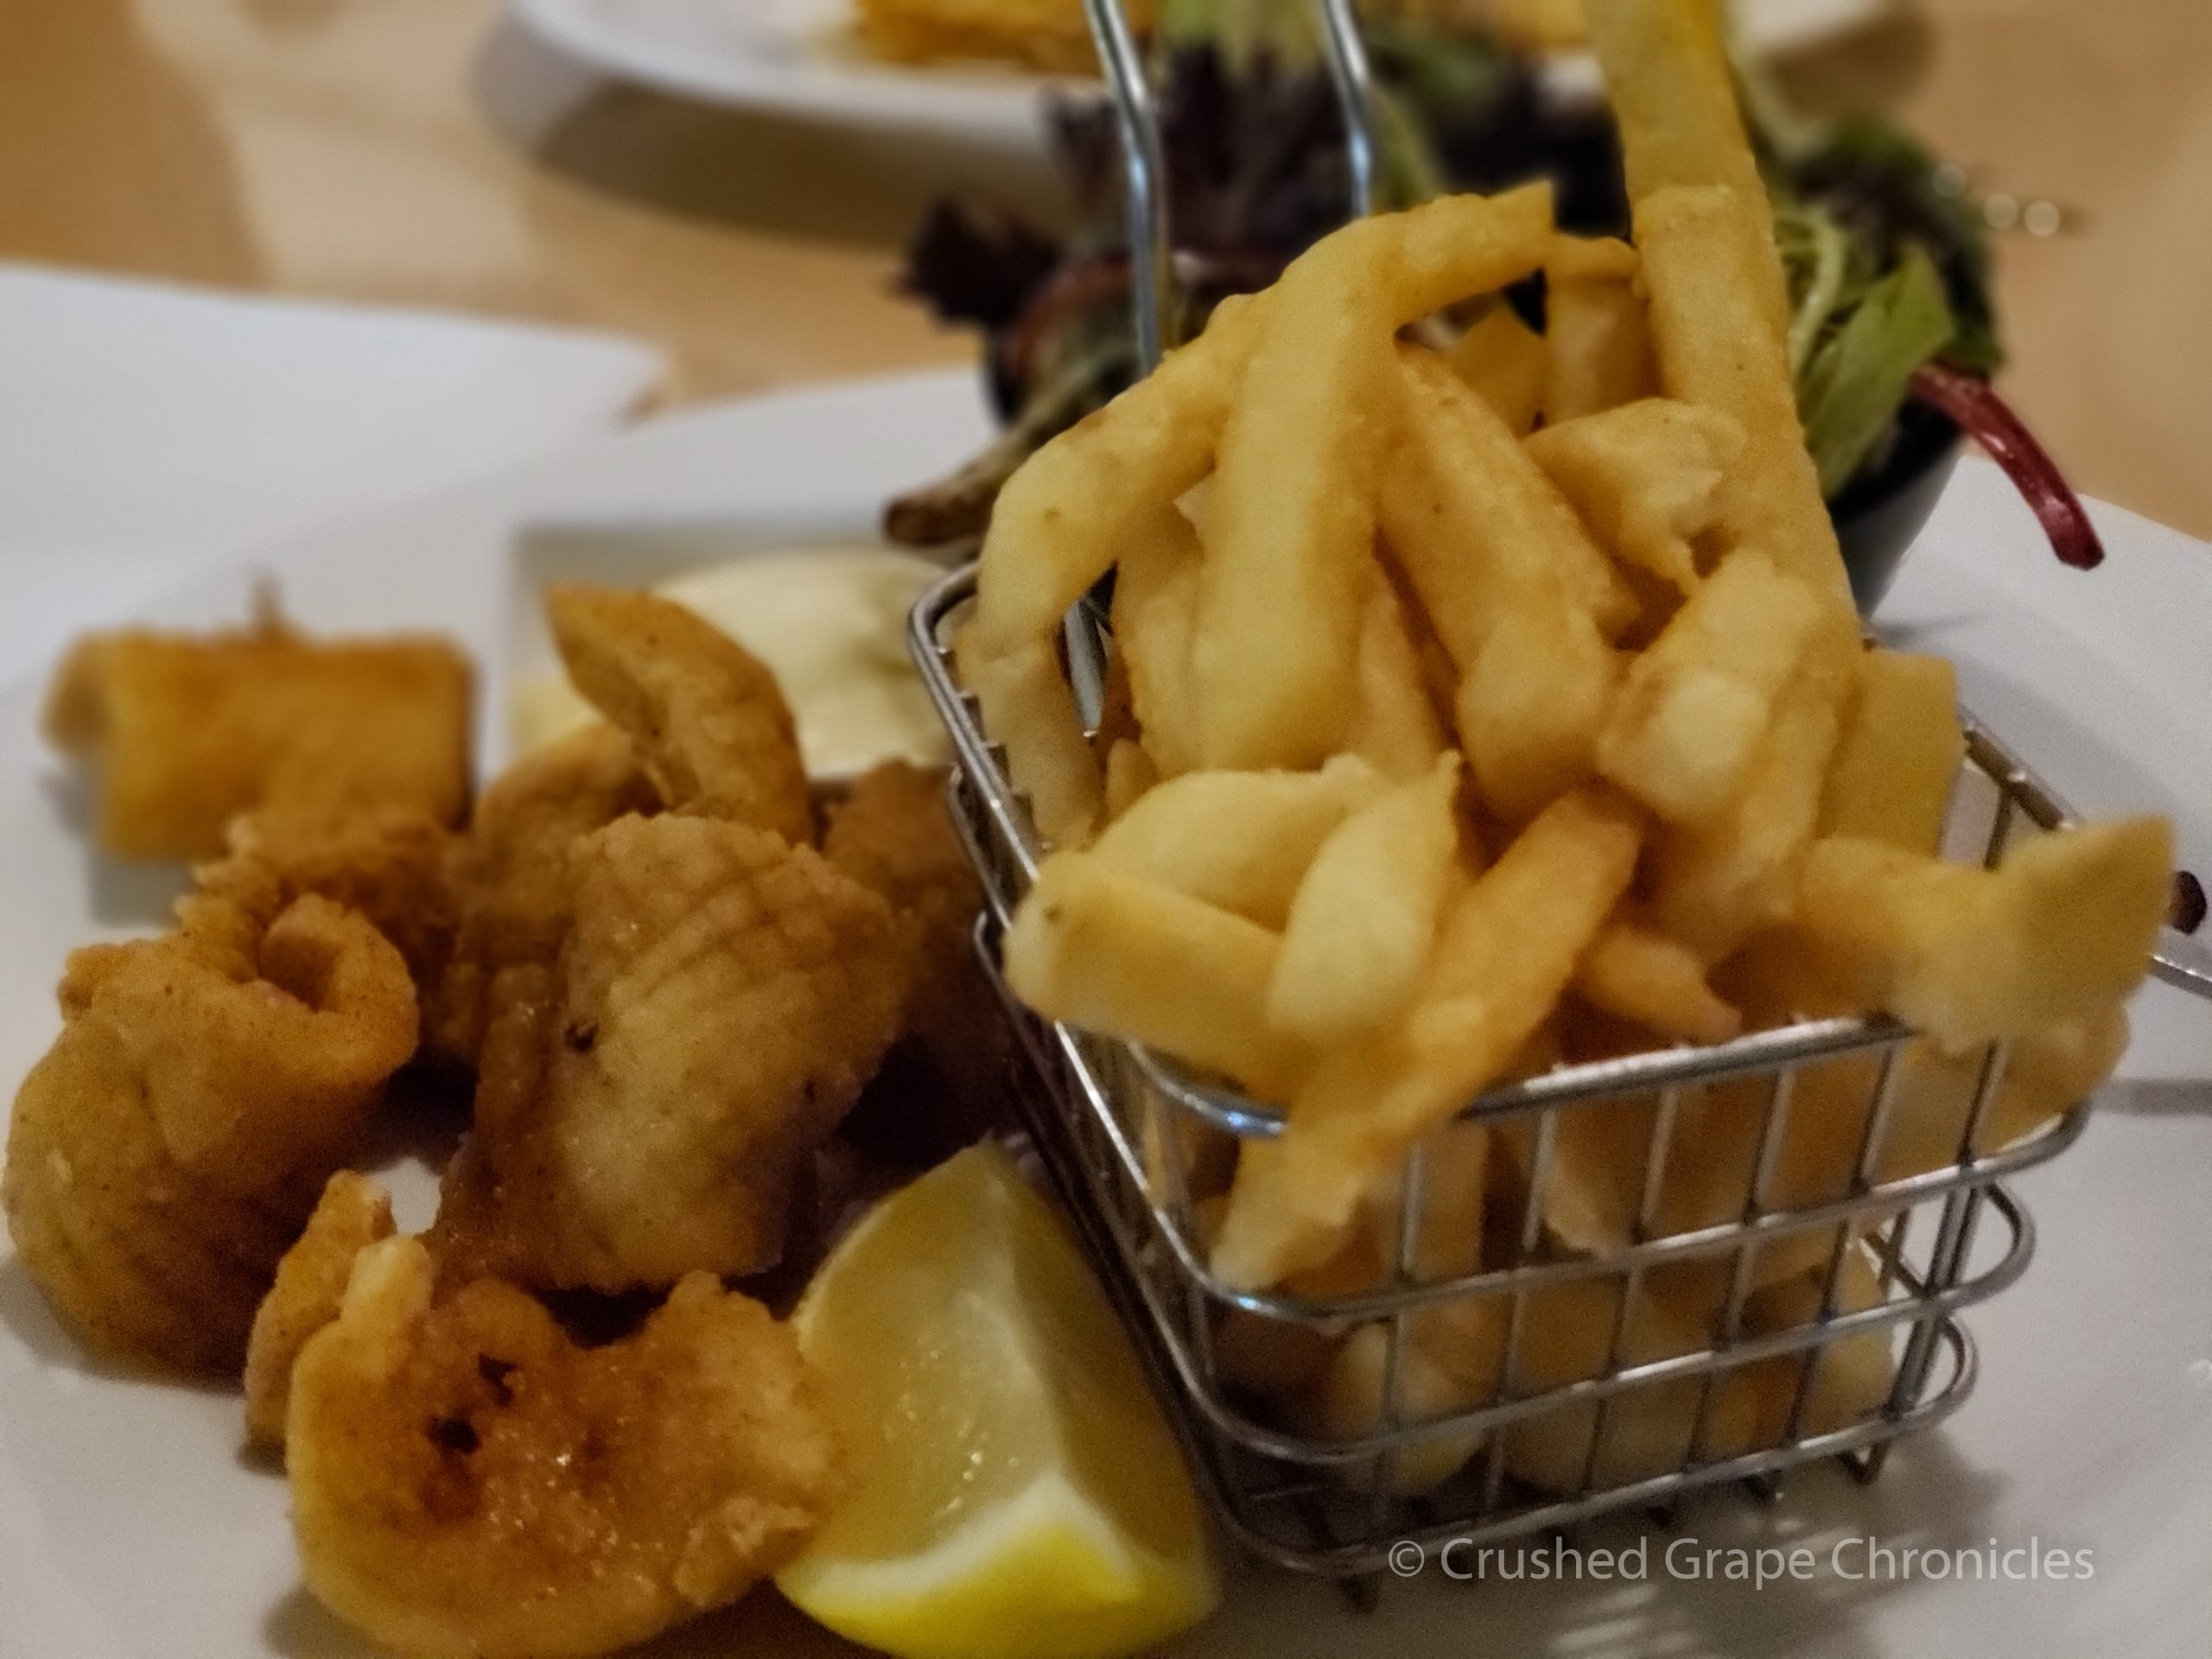 I had the Salt & Pepper Squid at the Red Heifer in Mudgee NSW Australia